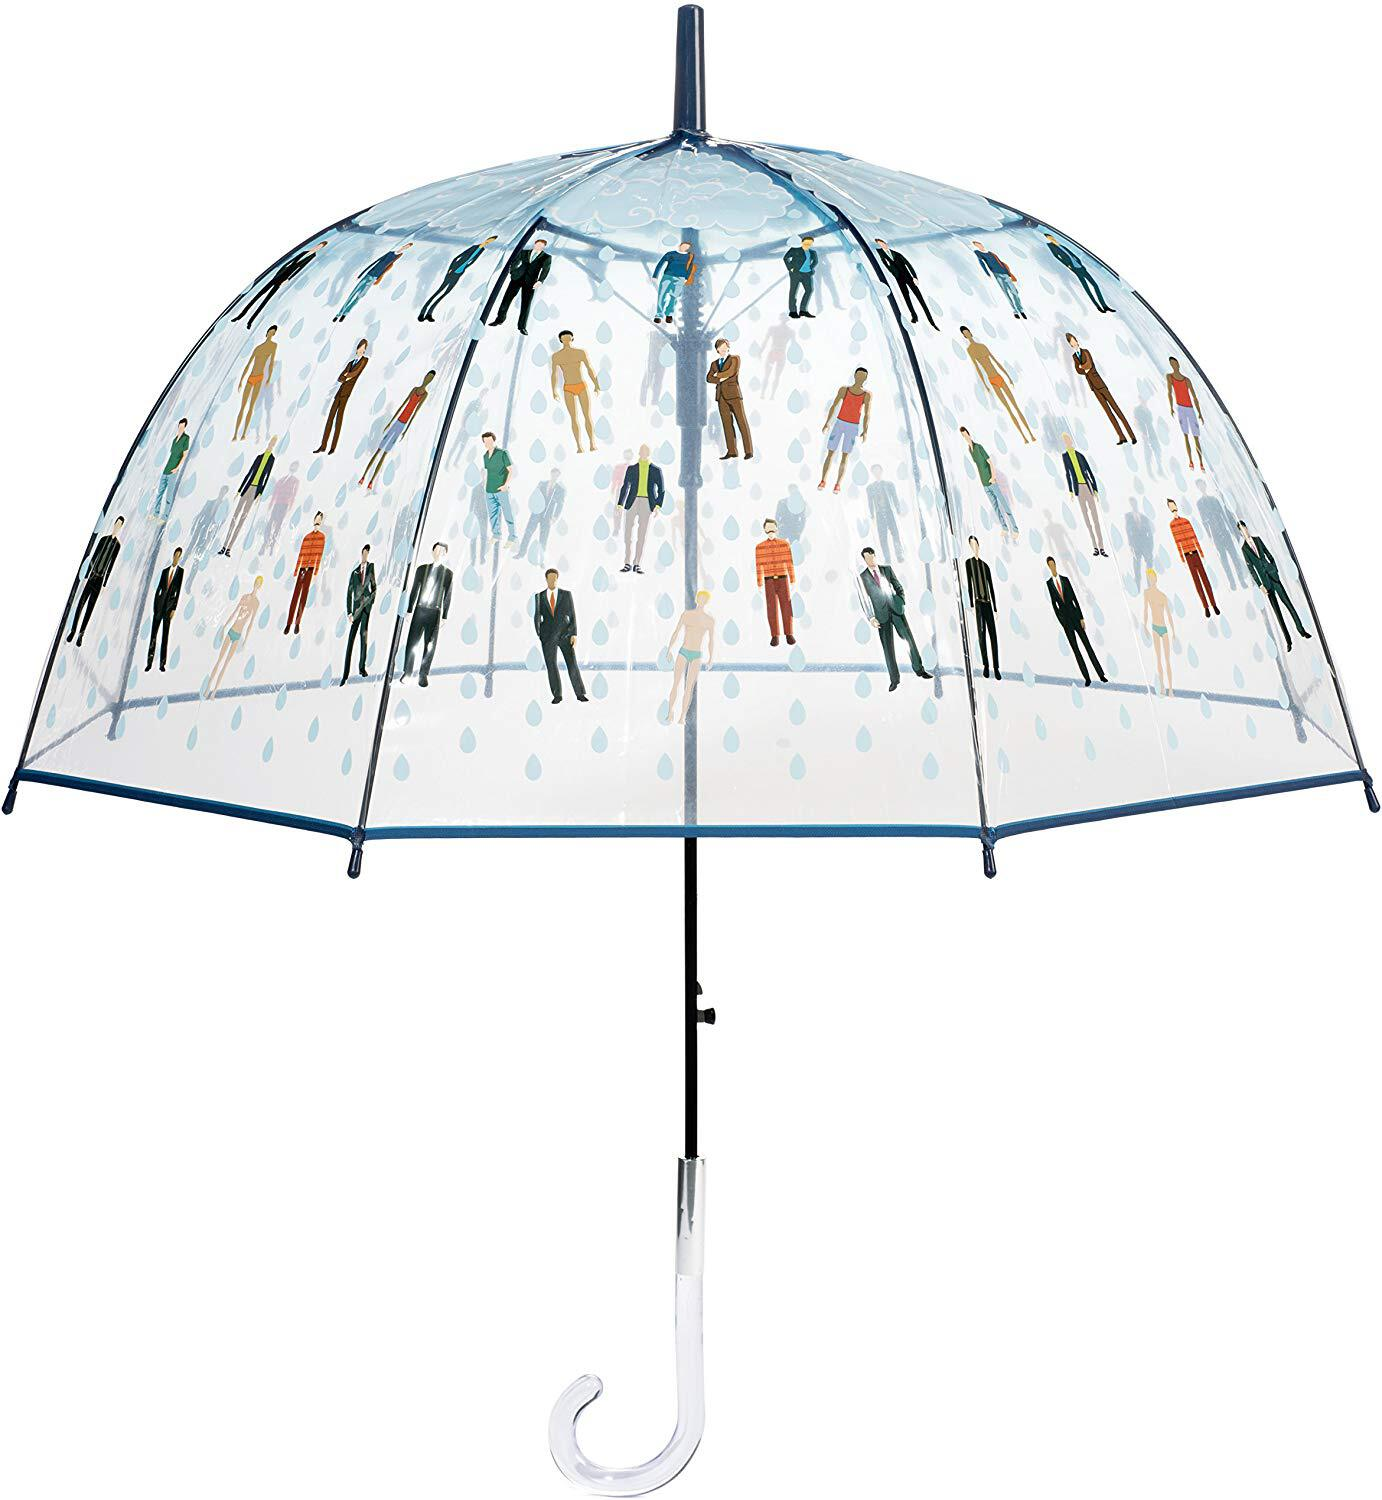 photo of clear umbrella with raindrops and men on it funny white elephant gift